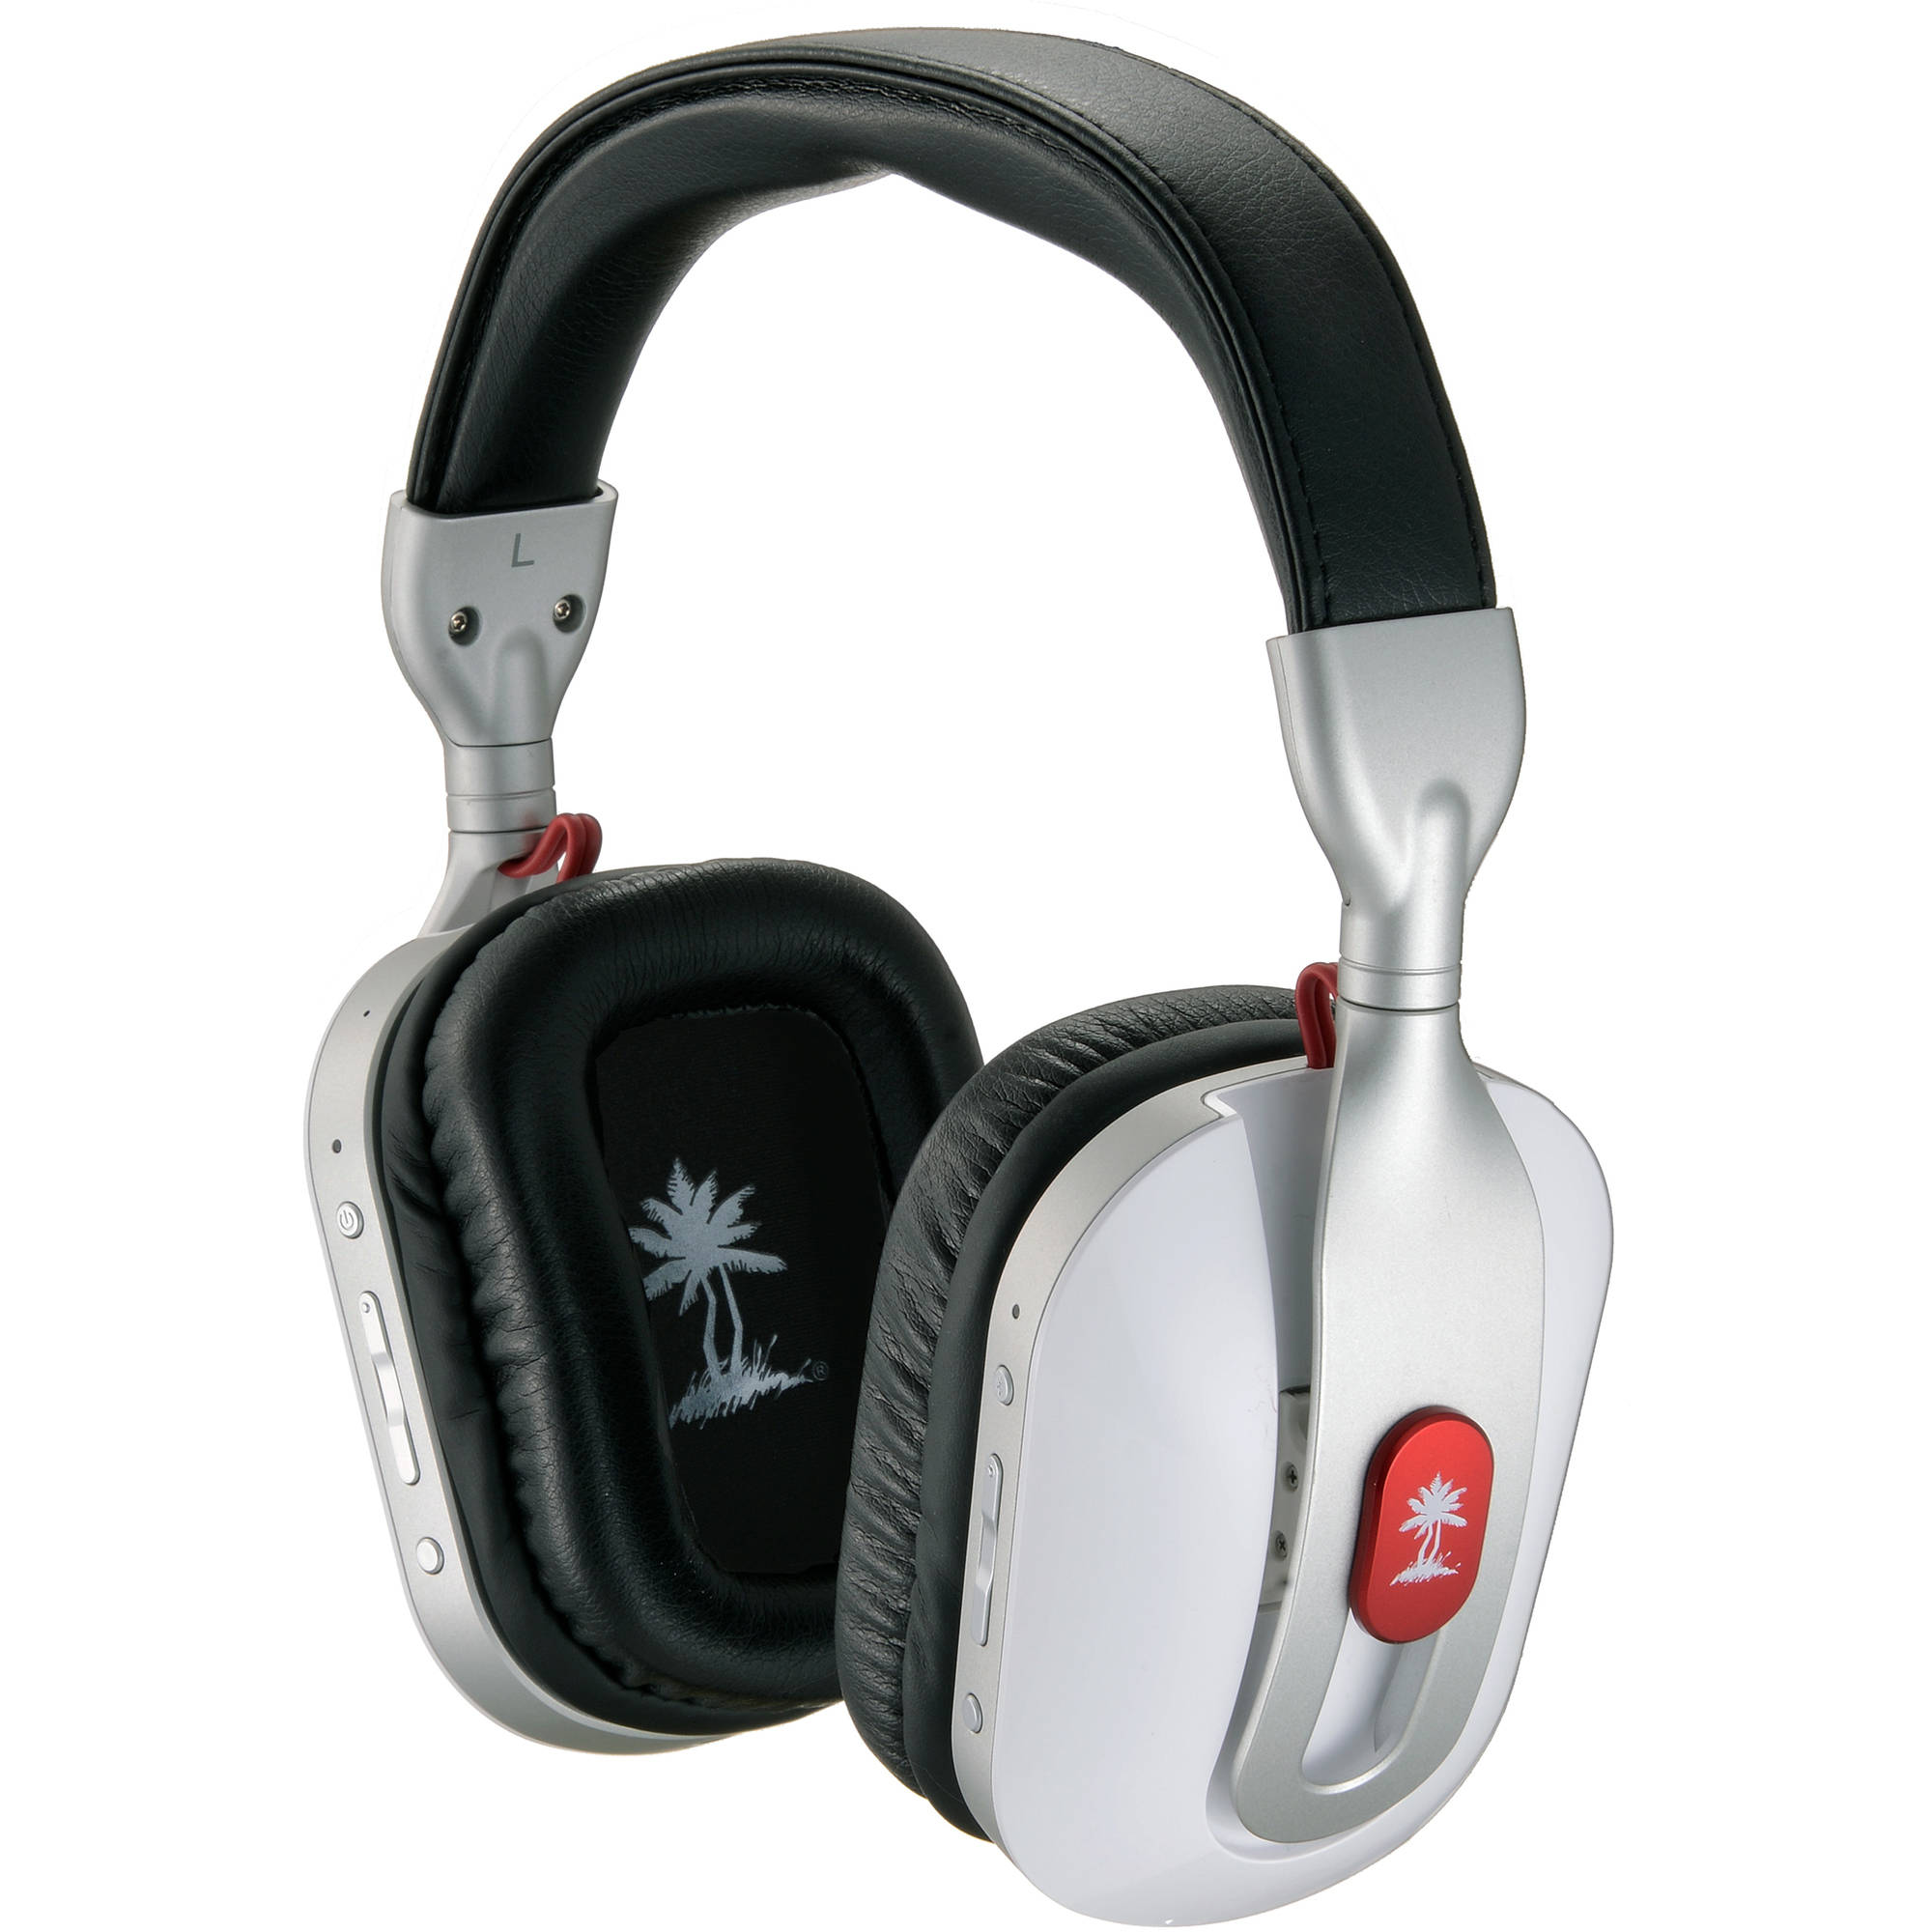 Turtle Beach i30 Bluetooth Noise-Canceling Headset